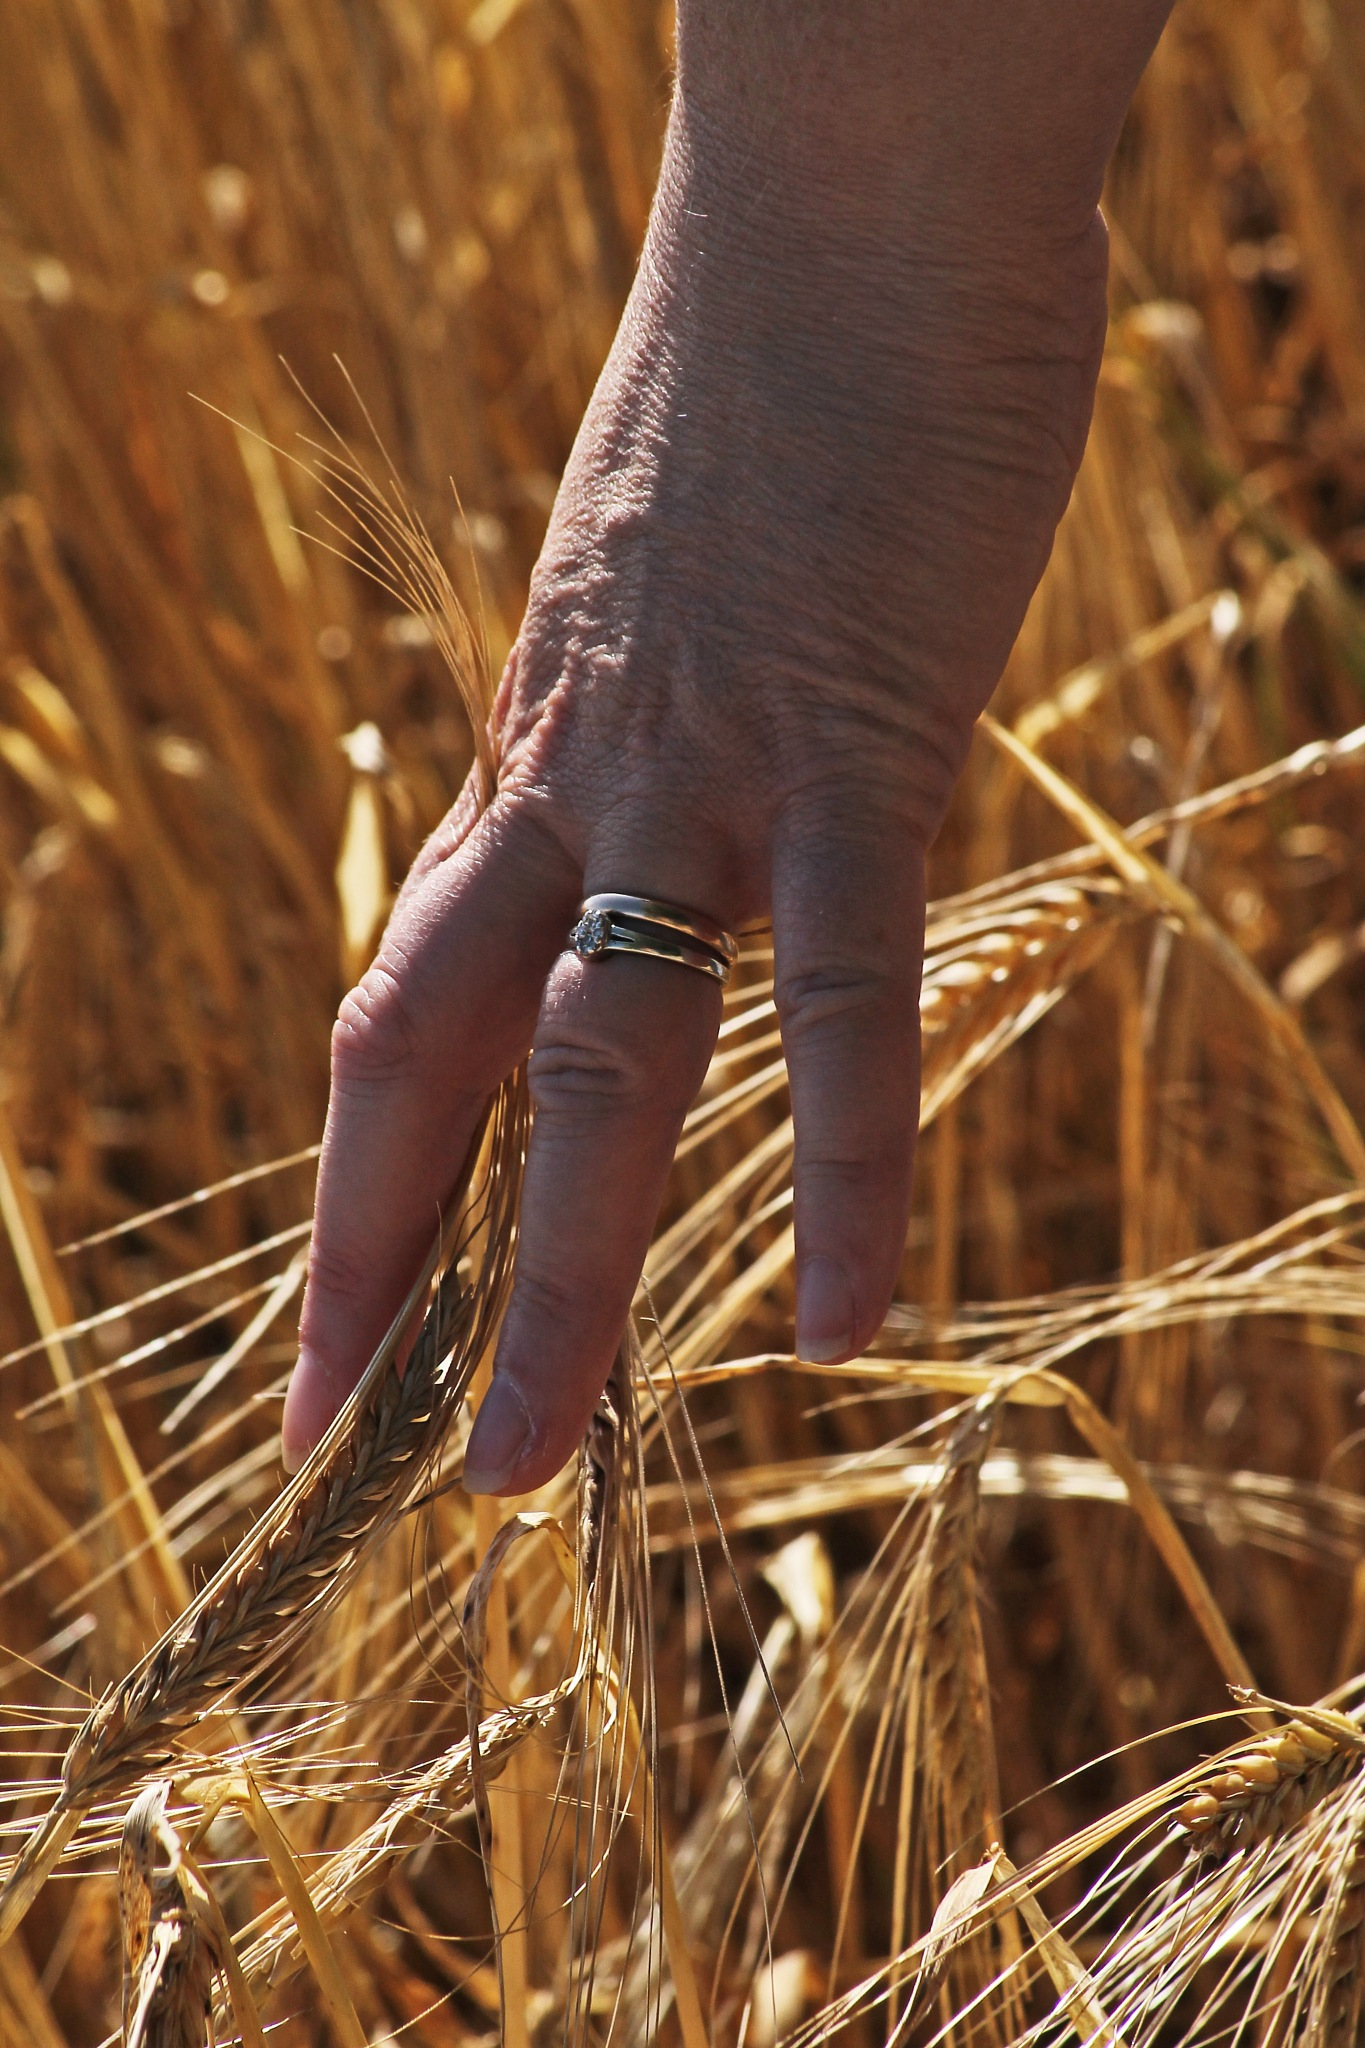 the hand that shakes the barley by David R Murphy